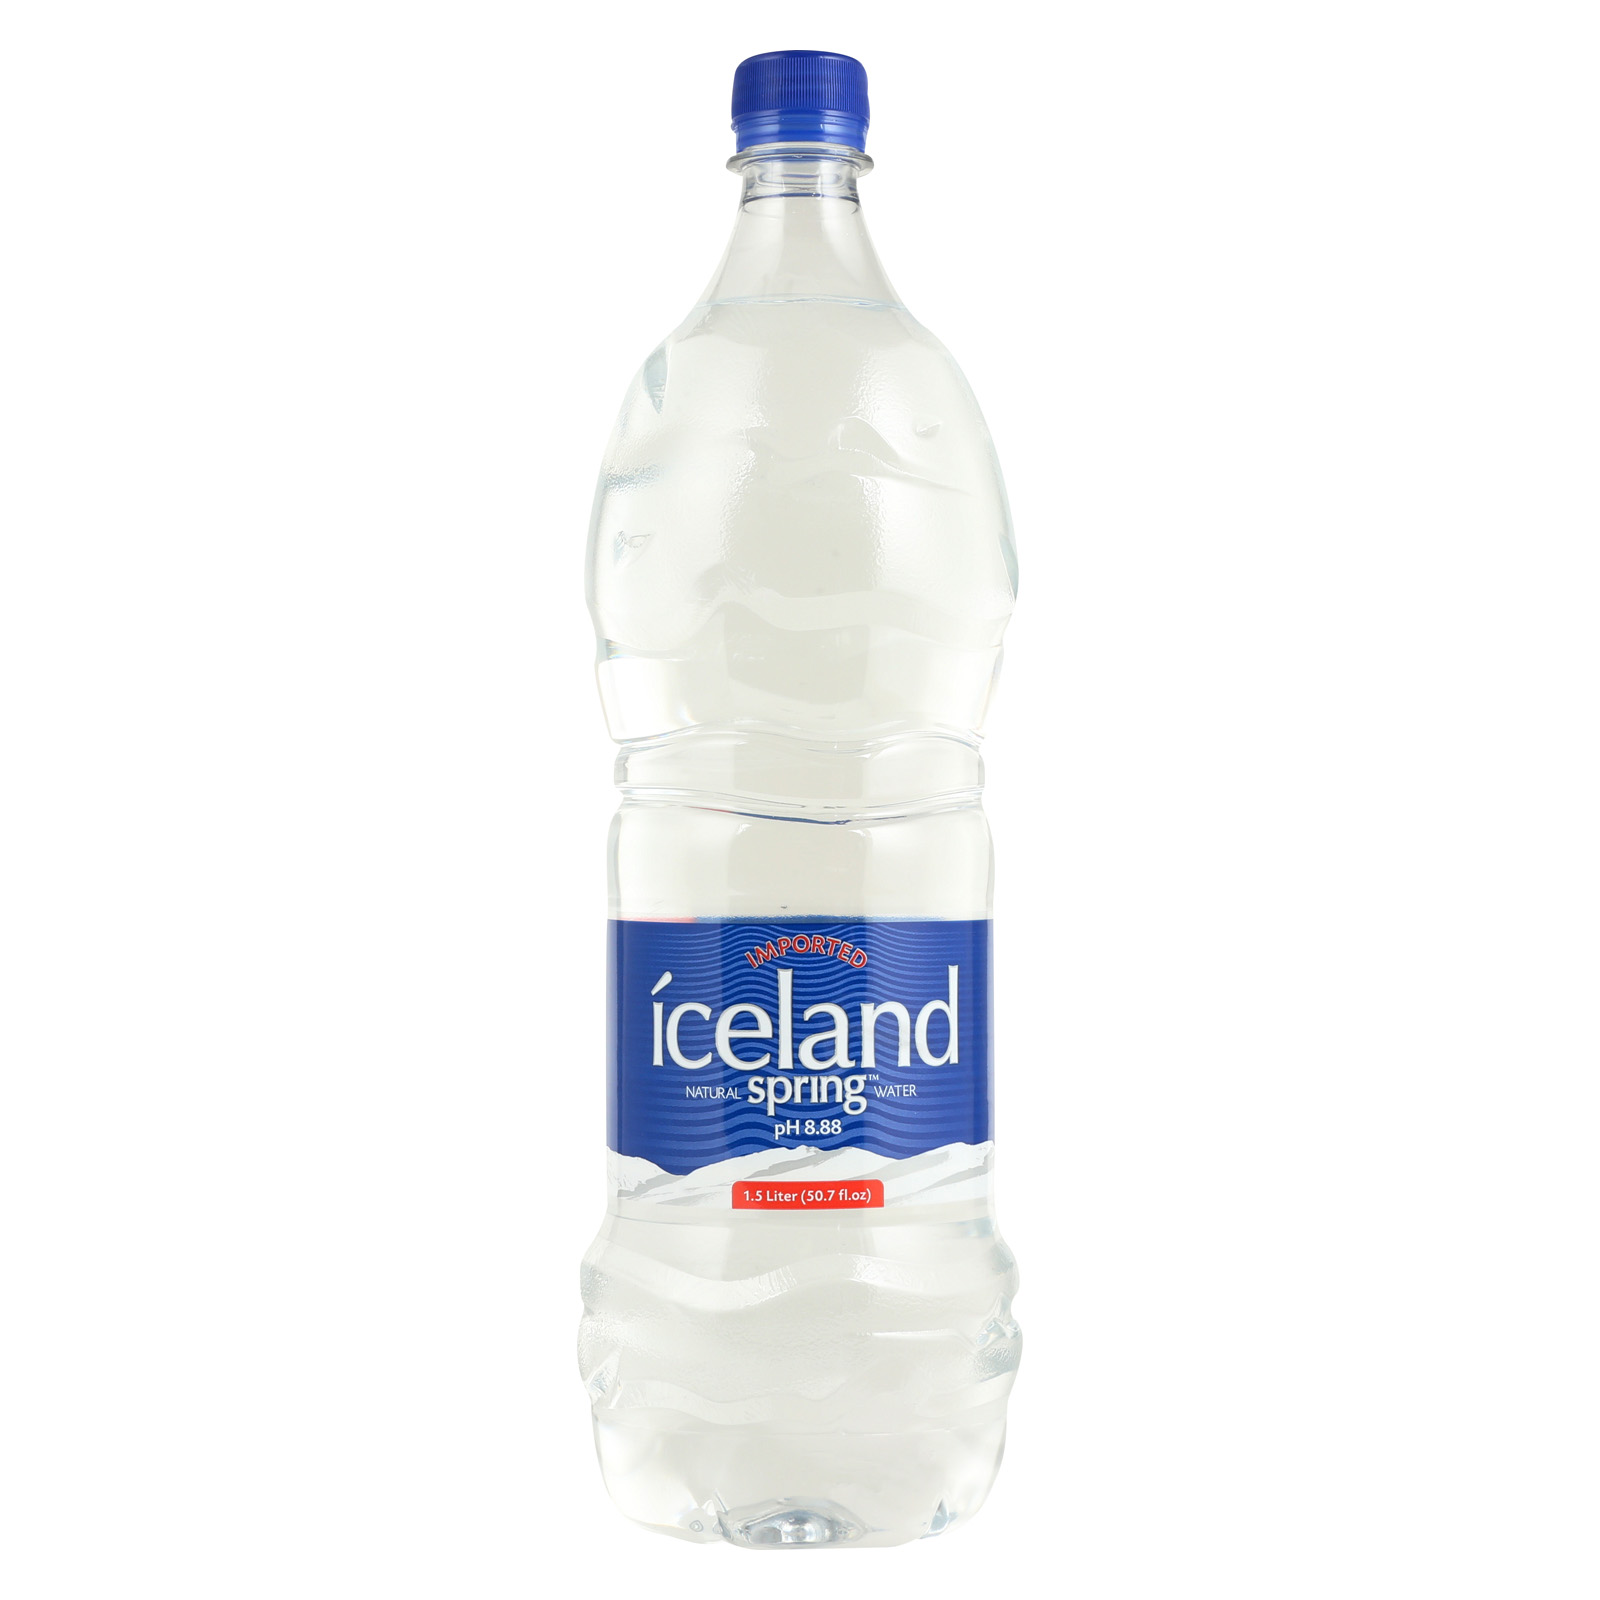 Iceland Springs Spring Water Case of 12 50.7 Fl oz. by